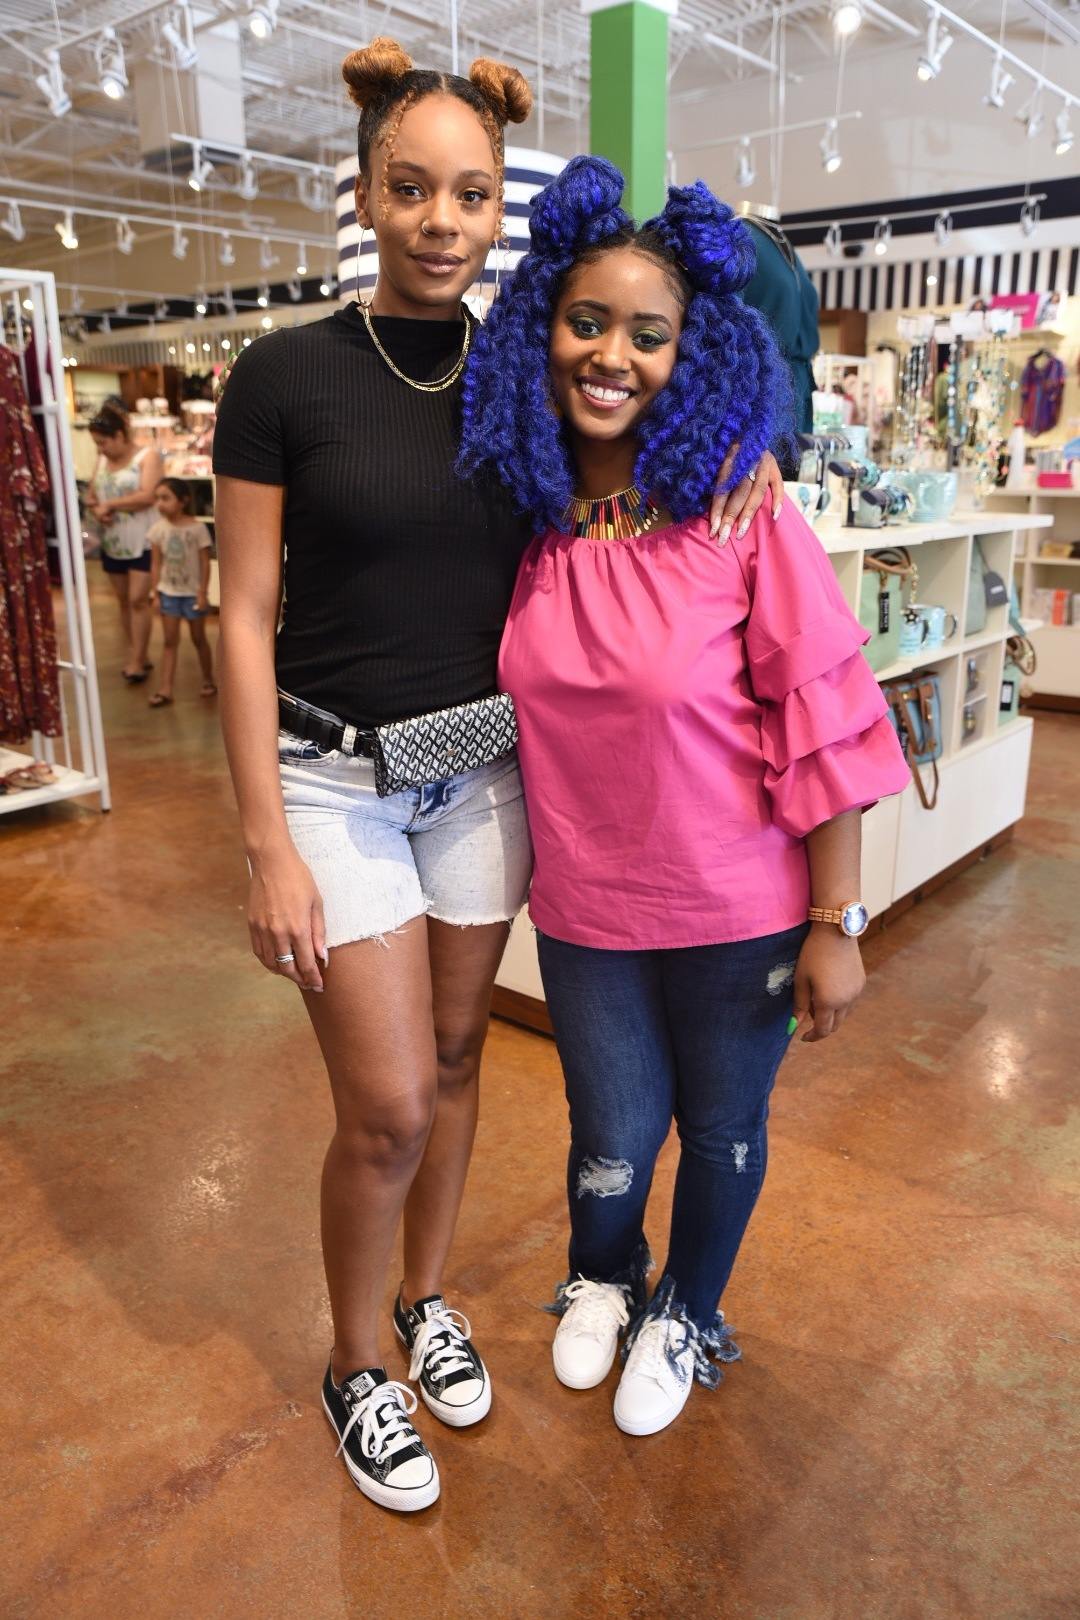 Me & Renee, Blogger from  @Ibrenee